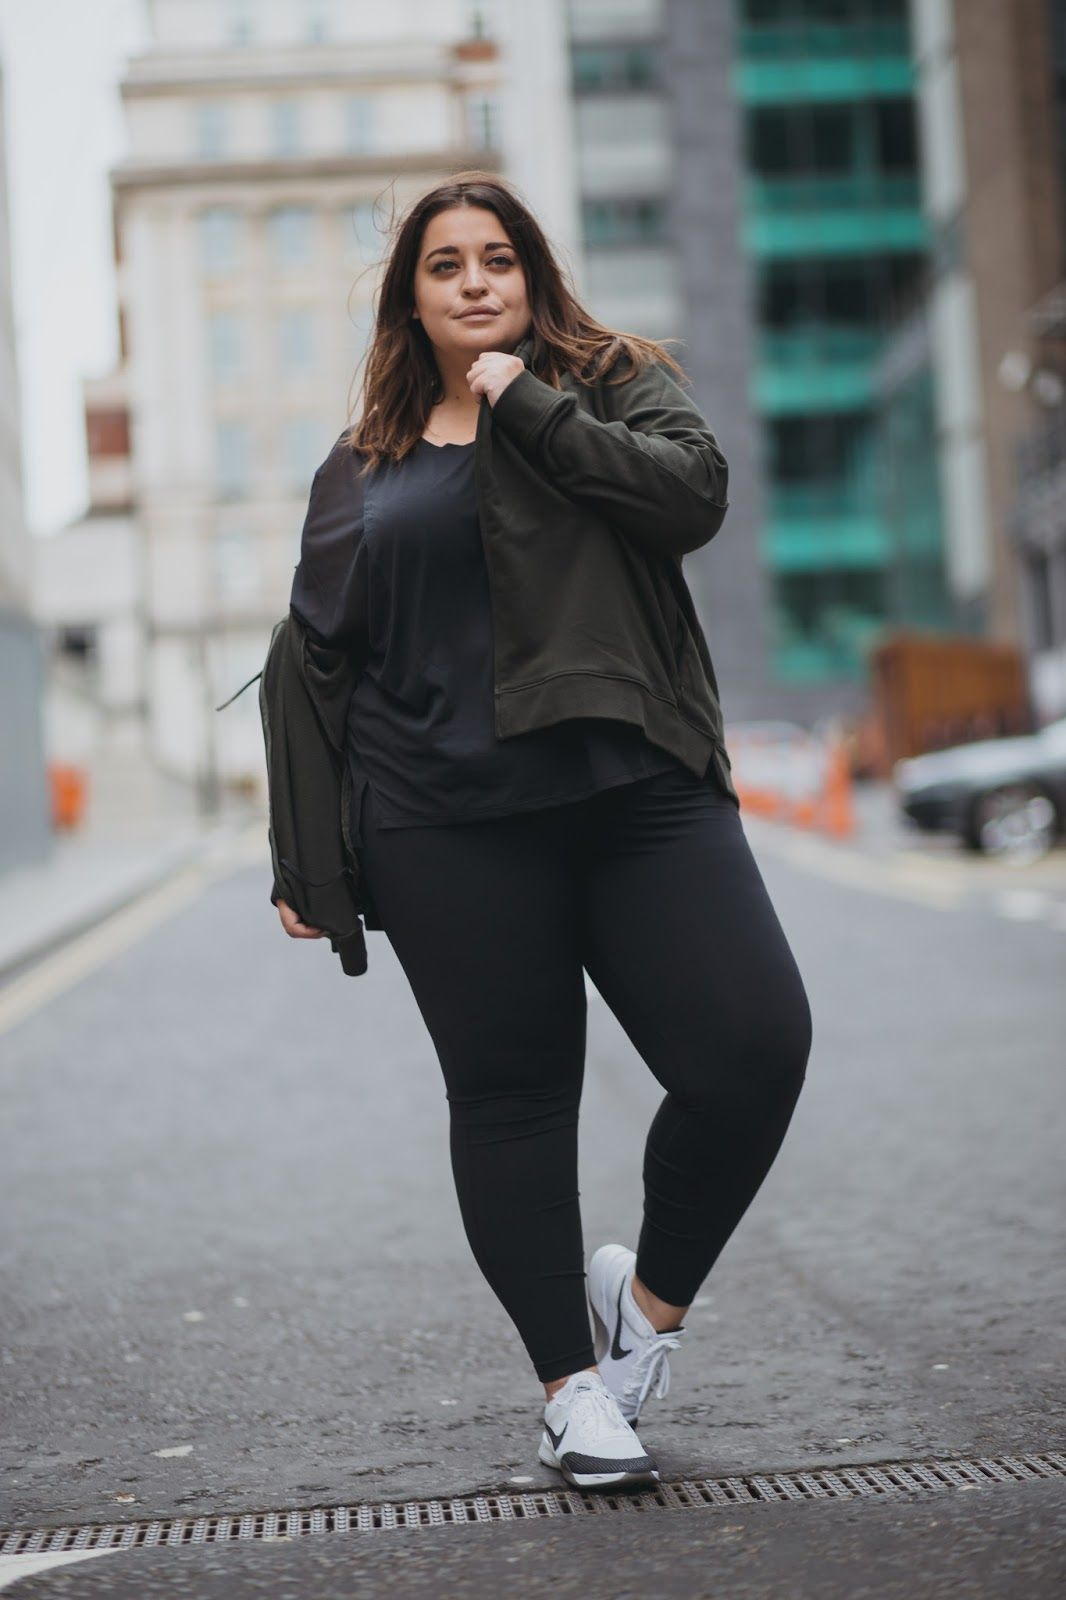 Nike designs activewear that's comfy, performs well and can take you  through anything from a gym workout to walk on the beach. And now it comes  in plus size